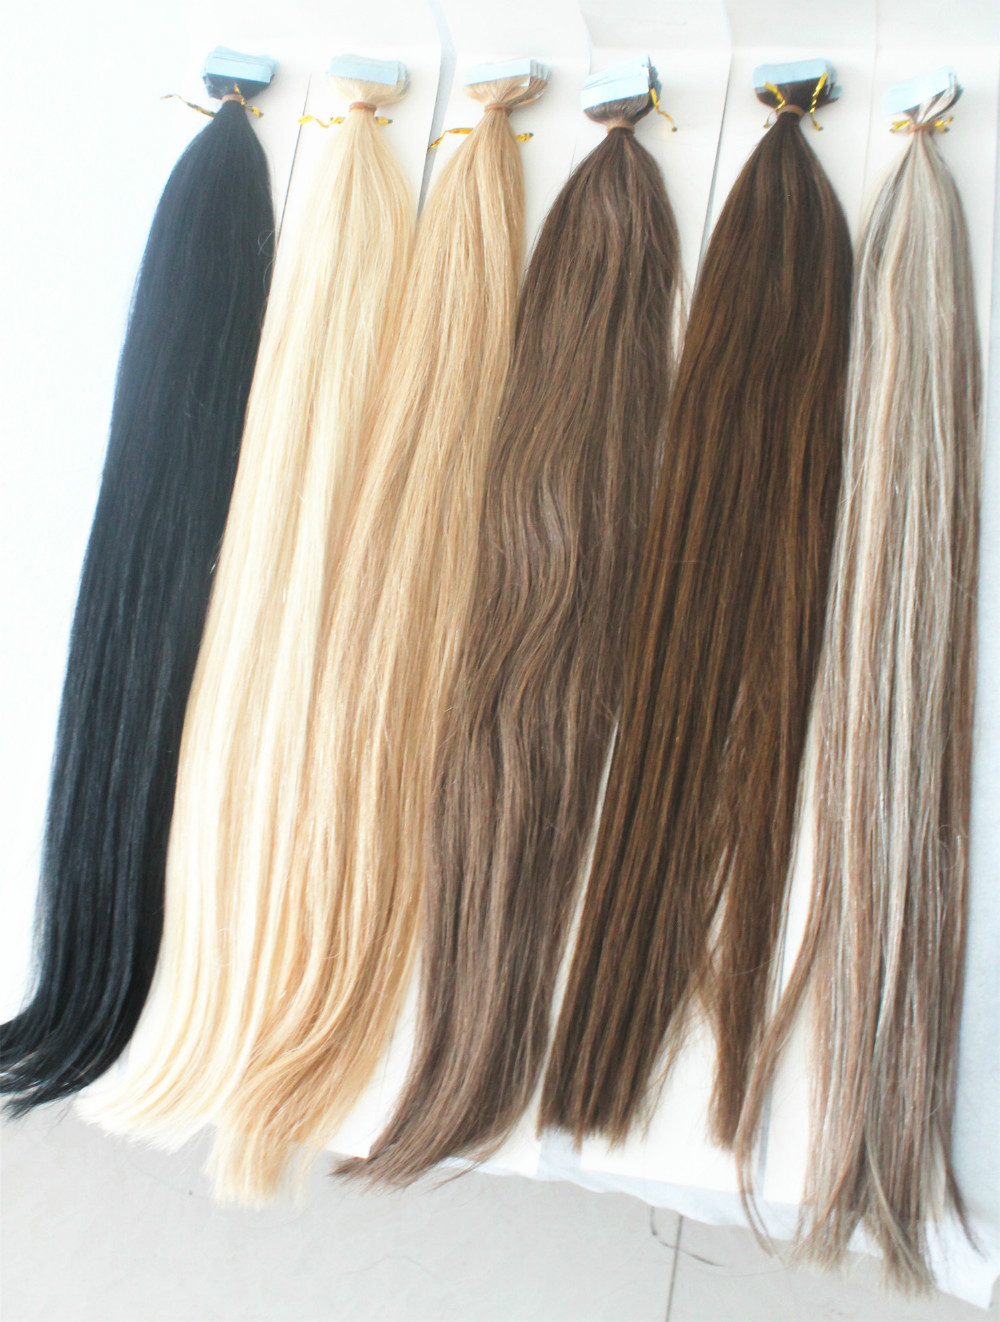 Buy human hair extensions online cheap image collections hair human hair extensions buy modern hairstyles in the us photo blog human hair extensions buy pmusecretfo pmusecretfo Choice Image